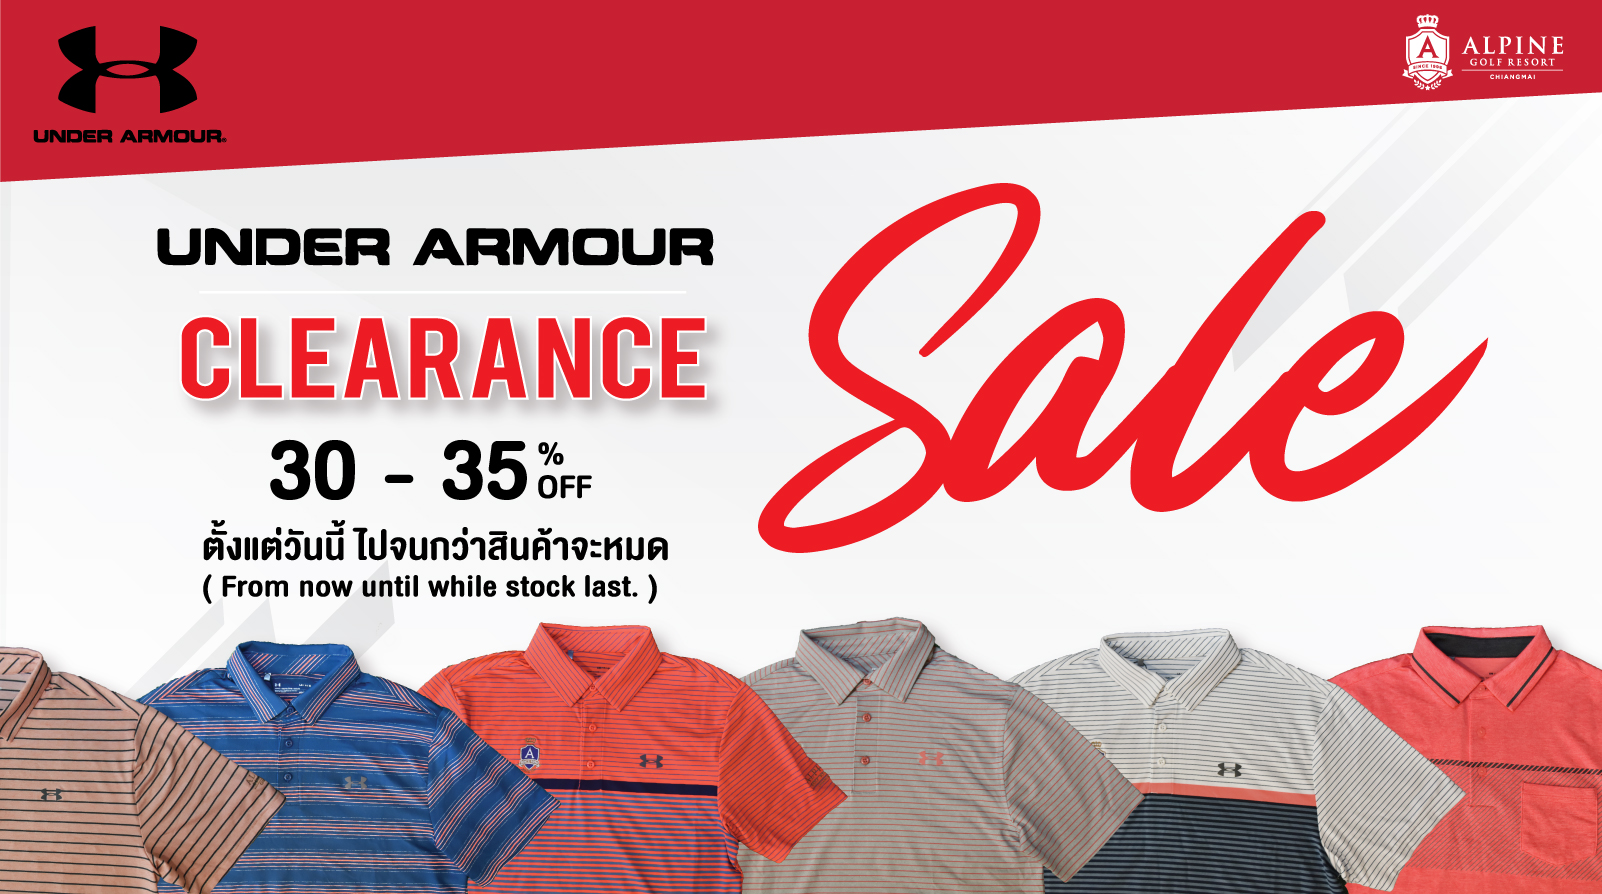 Under Armour Clearance Sale Discount 30 - 35% Off